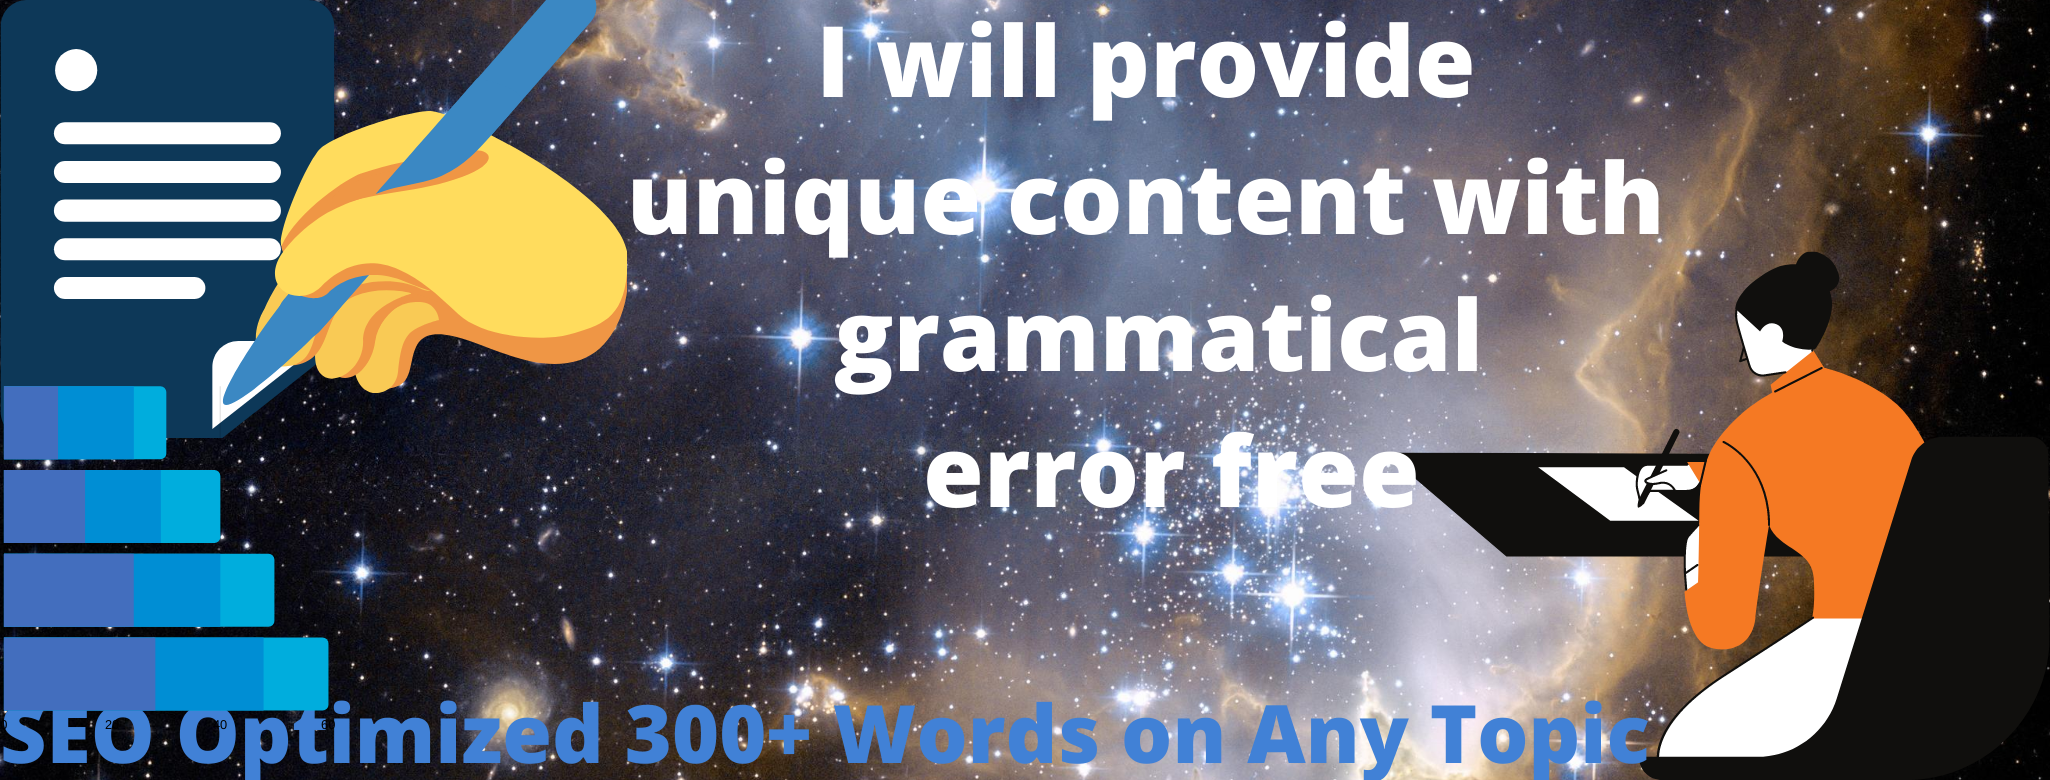 SEO Optimized 300+ Words Unique Article Writing on Any Topic